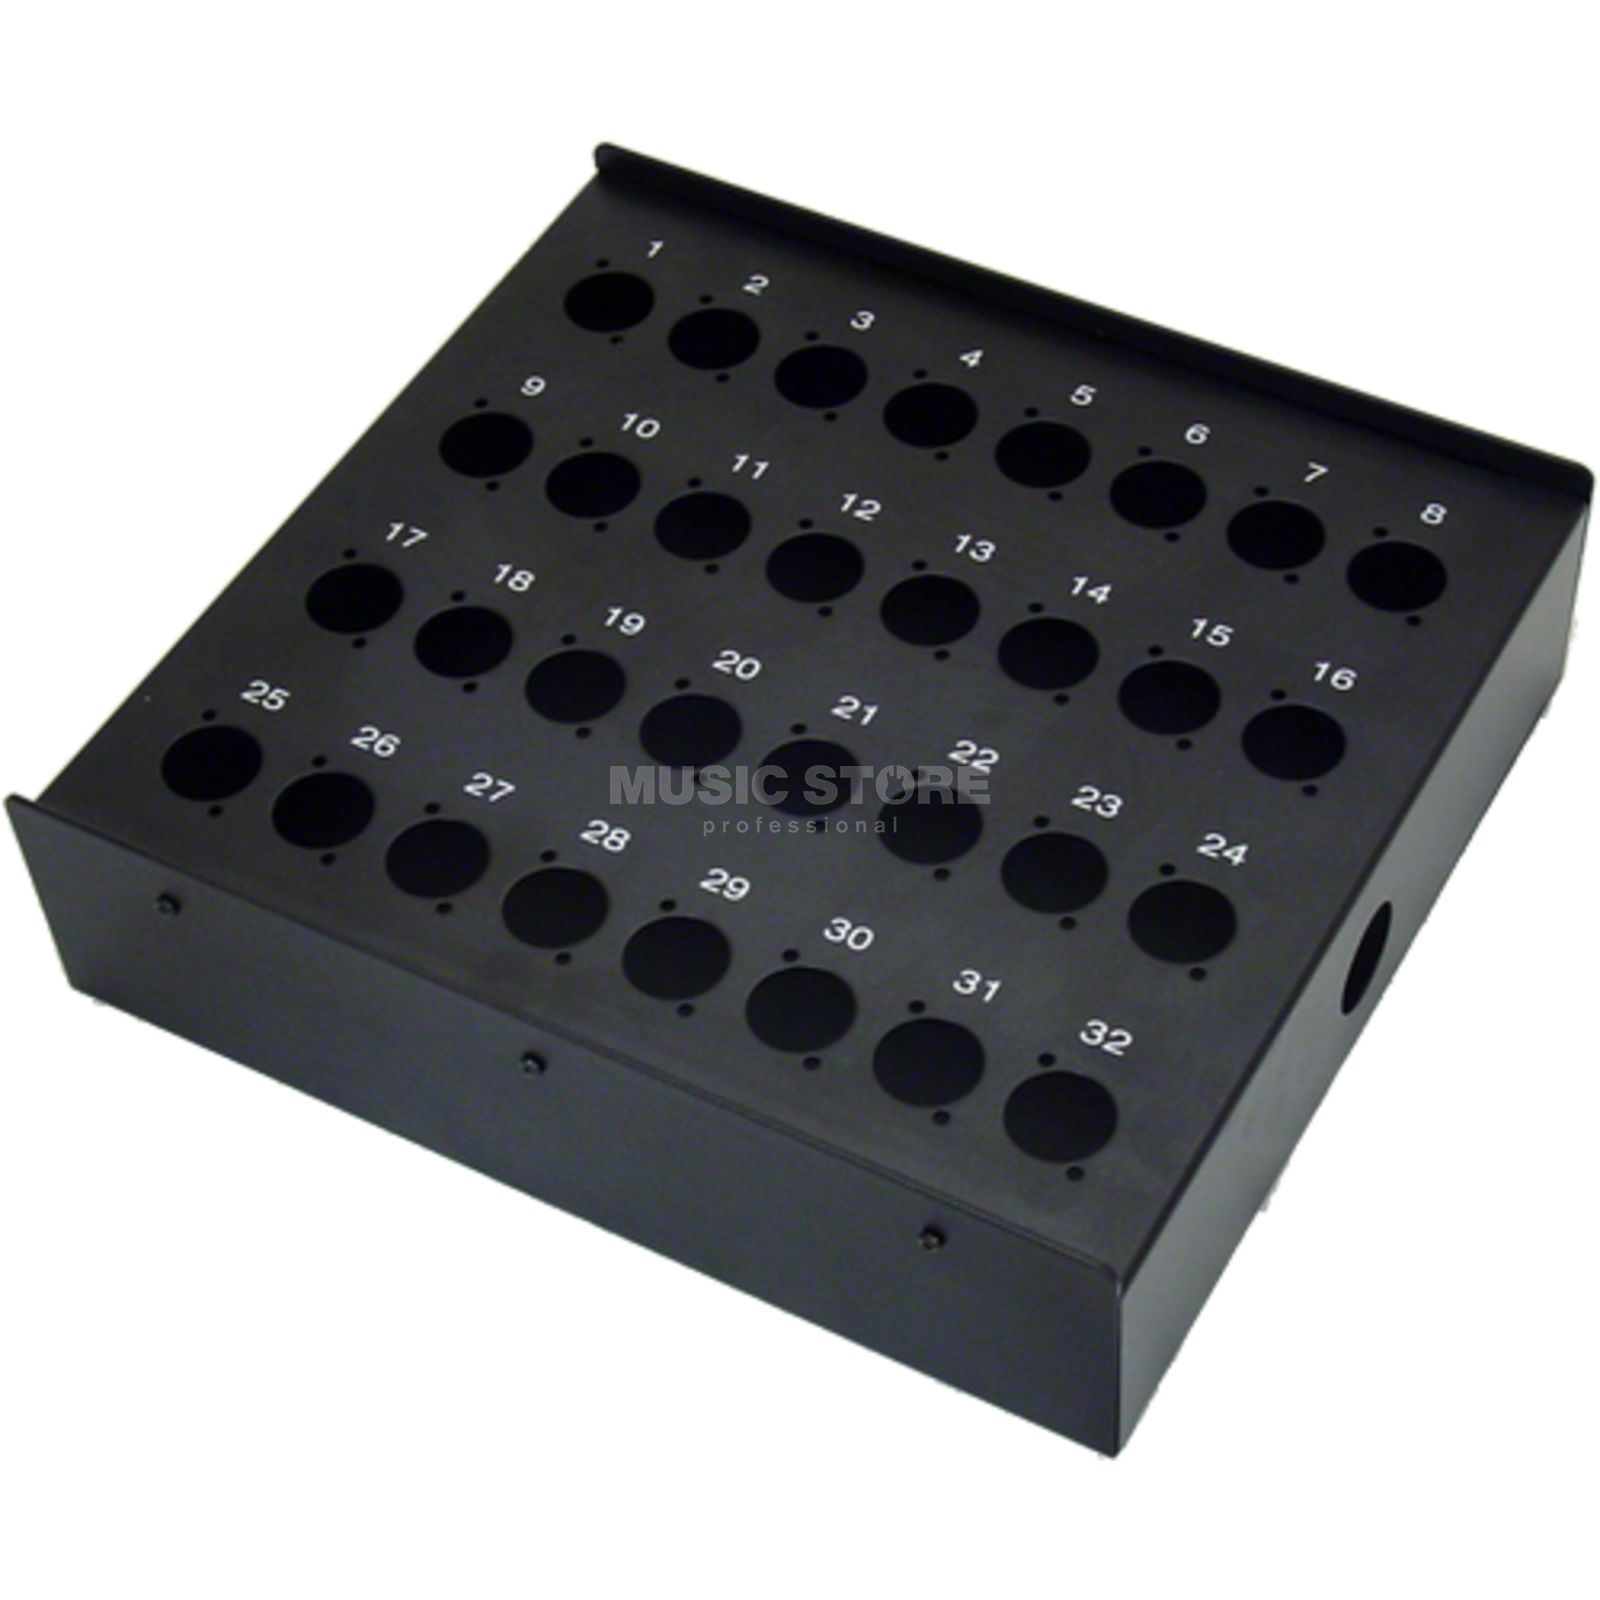 MUSIC STORE Stagebox - 32 / 32-Holes for Floor/Wall, D-Series   Produktbillede